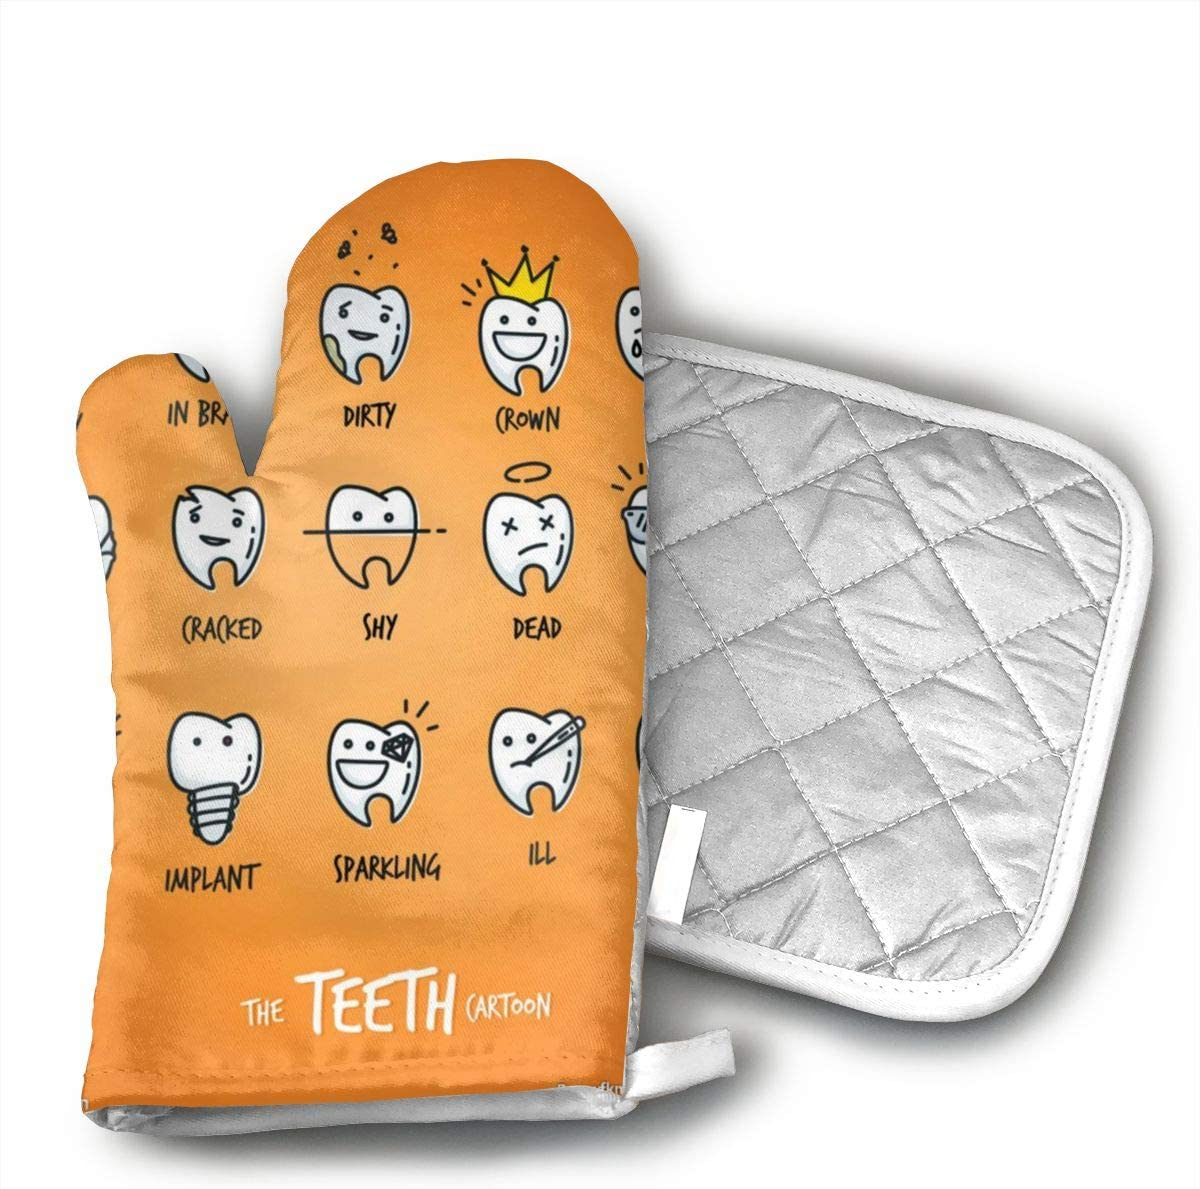 Wiqo9 Cute Cartoon Teeth Oven Mitts and Pot Holders Kitchen Mitten Cooking Gloves,Cooking, Baking, BBQ.